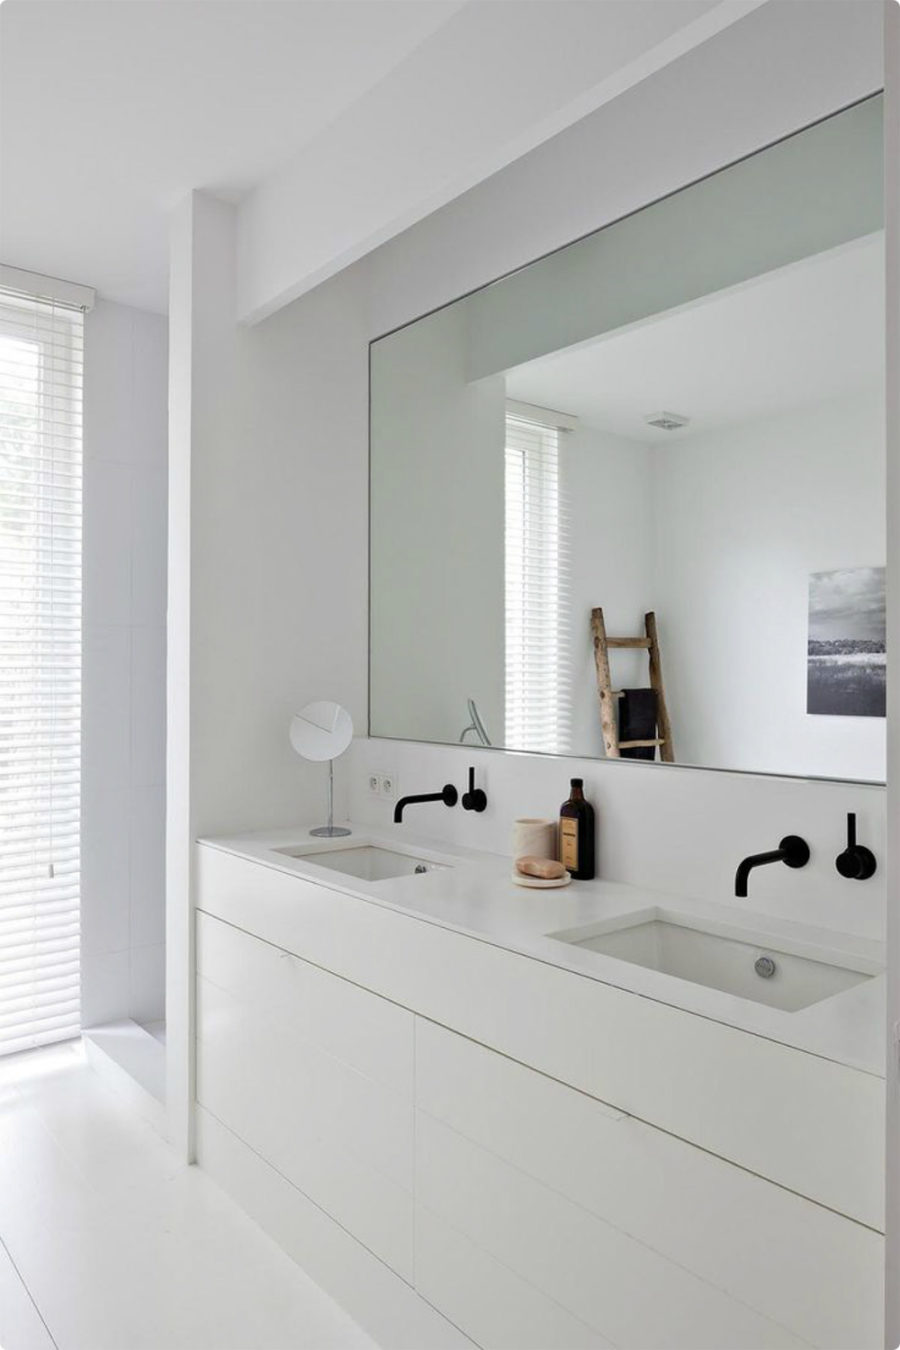 Charmant Big Bathroom Mirror Trend In Real Interiors